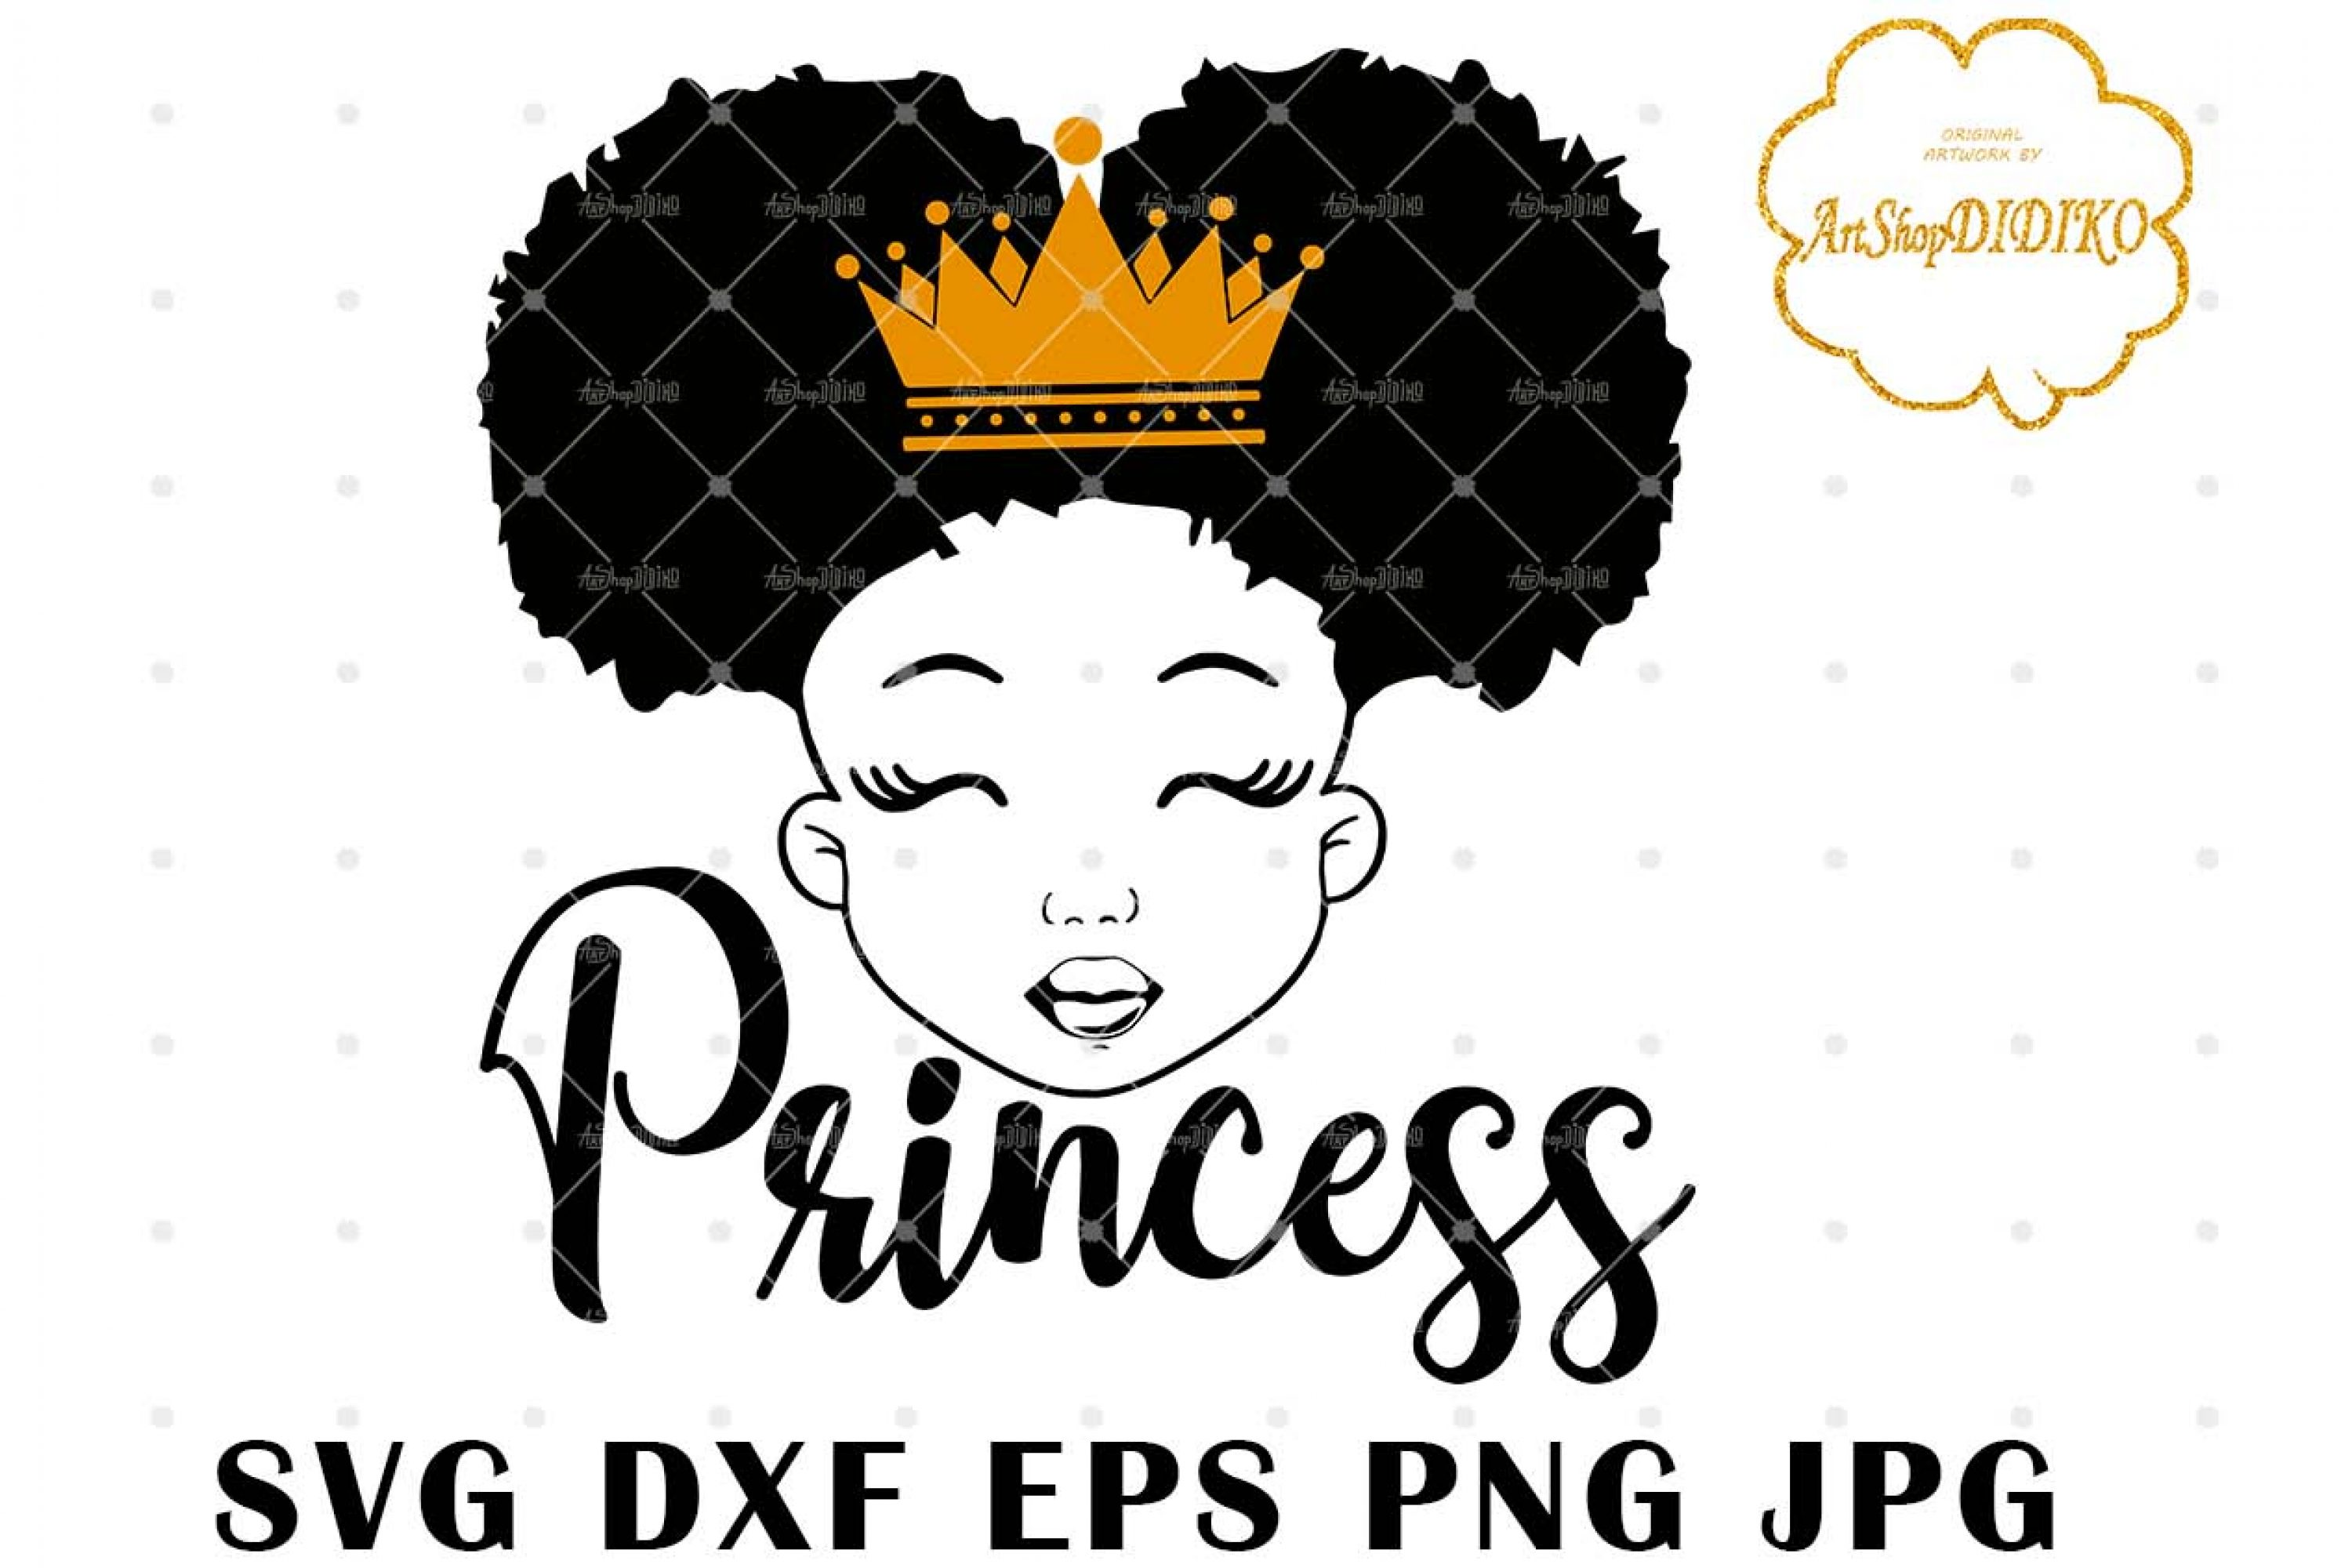 Cute Afro Girl Silhouette SVG, Afro Princess SVG, Afro Puff Girl SVG, Afro Kid SVG, African American Girl SVG, DXF, EPS, PNG, JPG, Silhouette Files, Cricut Cut Files